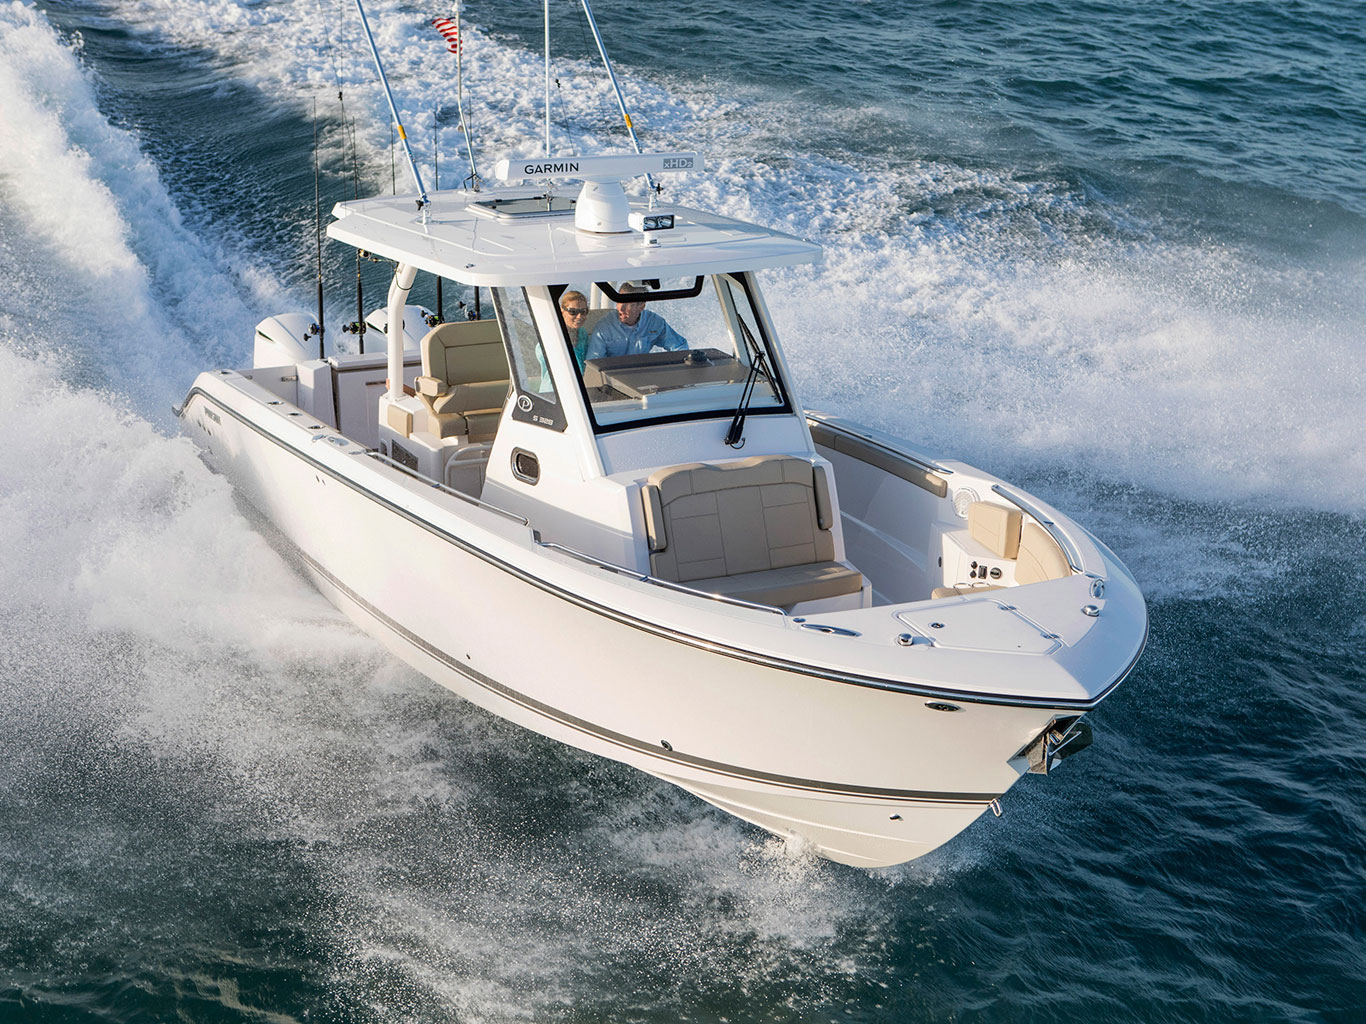 hight resolution of with this 32 luxury center console whether you make a day of fishing diving or cruising you ll do it effortlessly